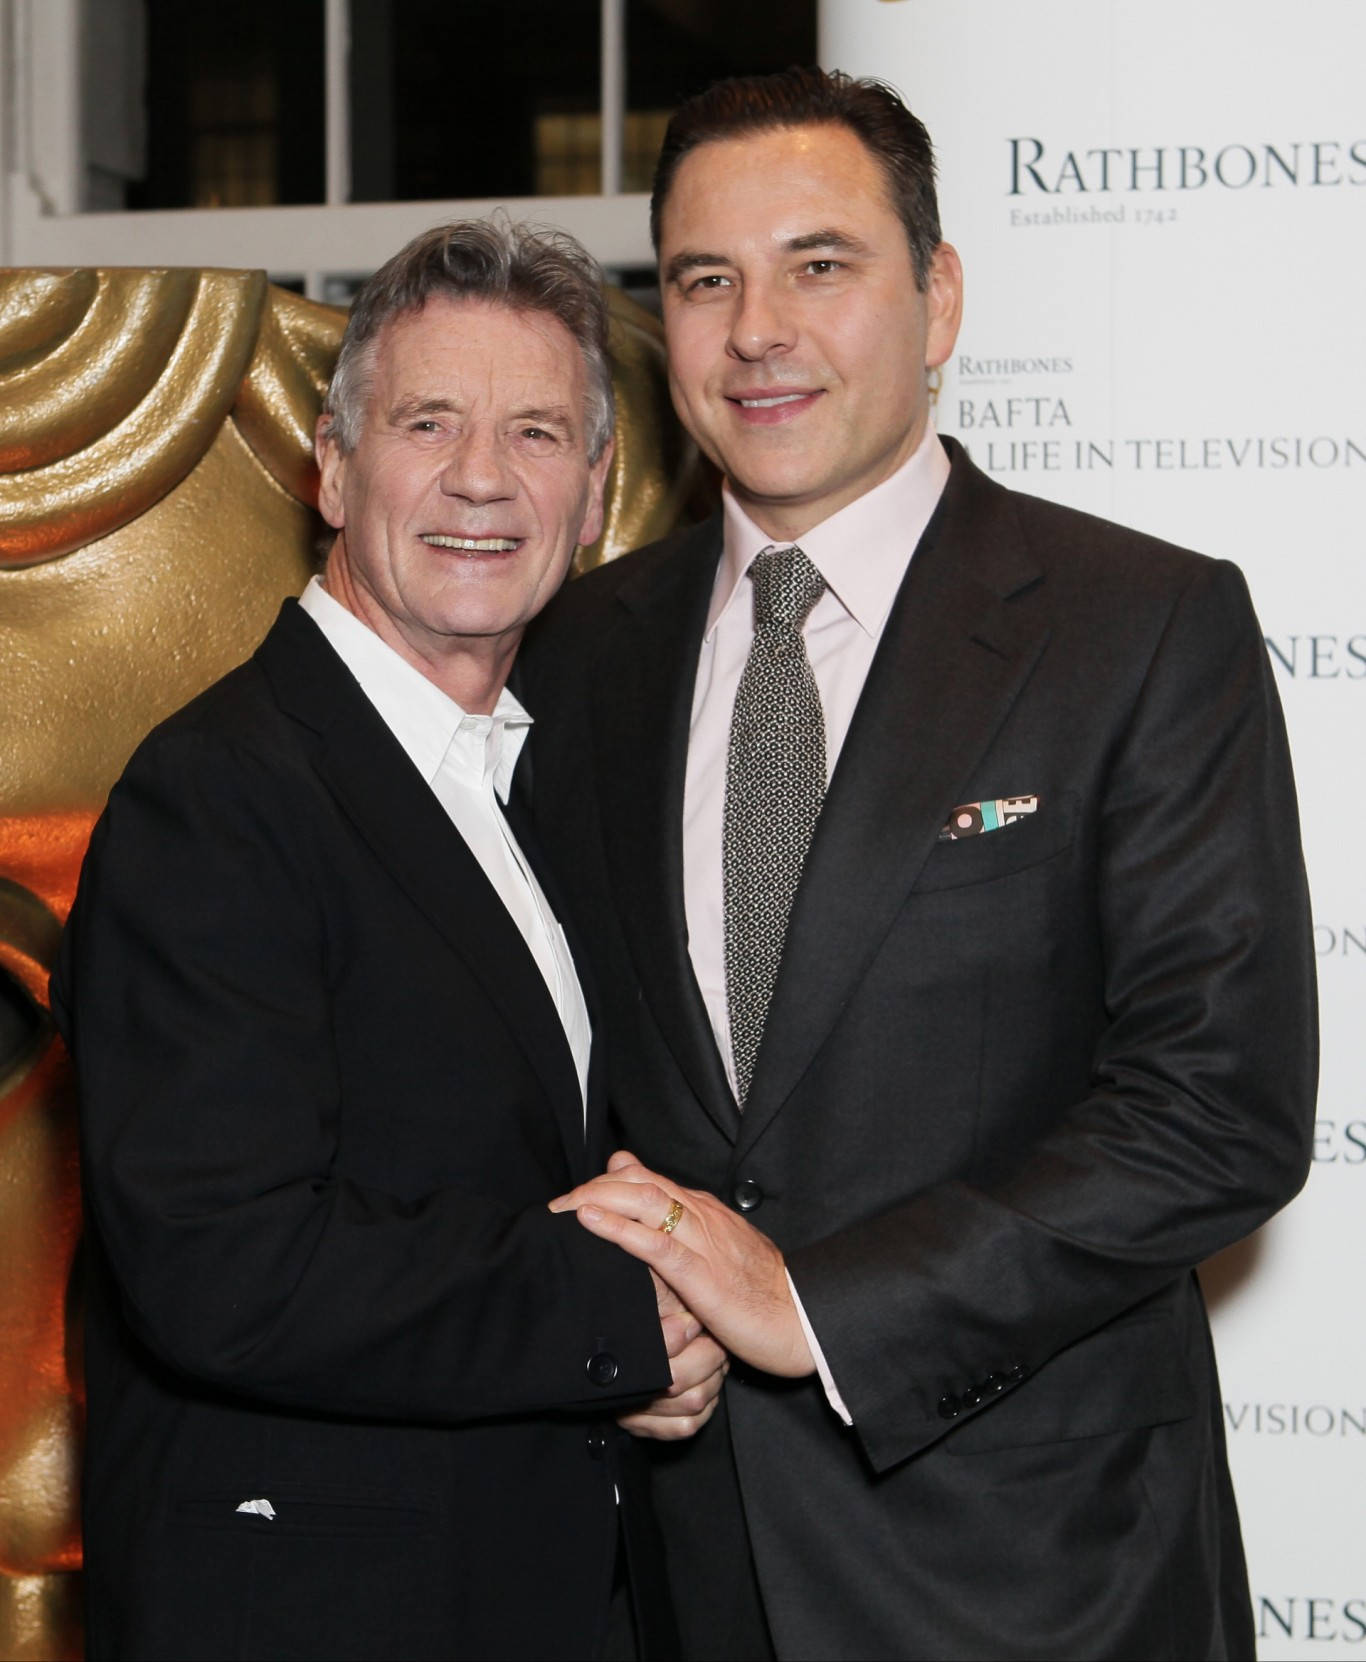 Michael Palin and David Walliams